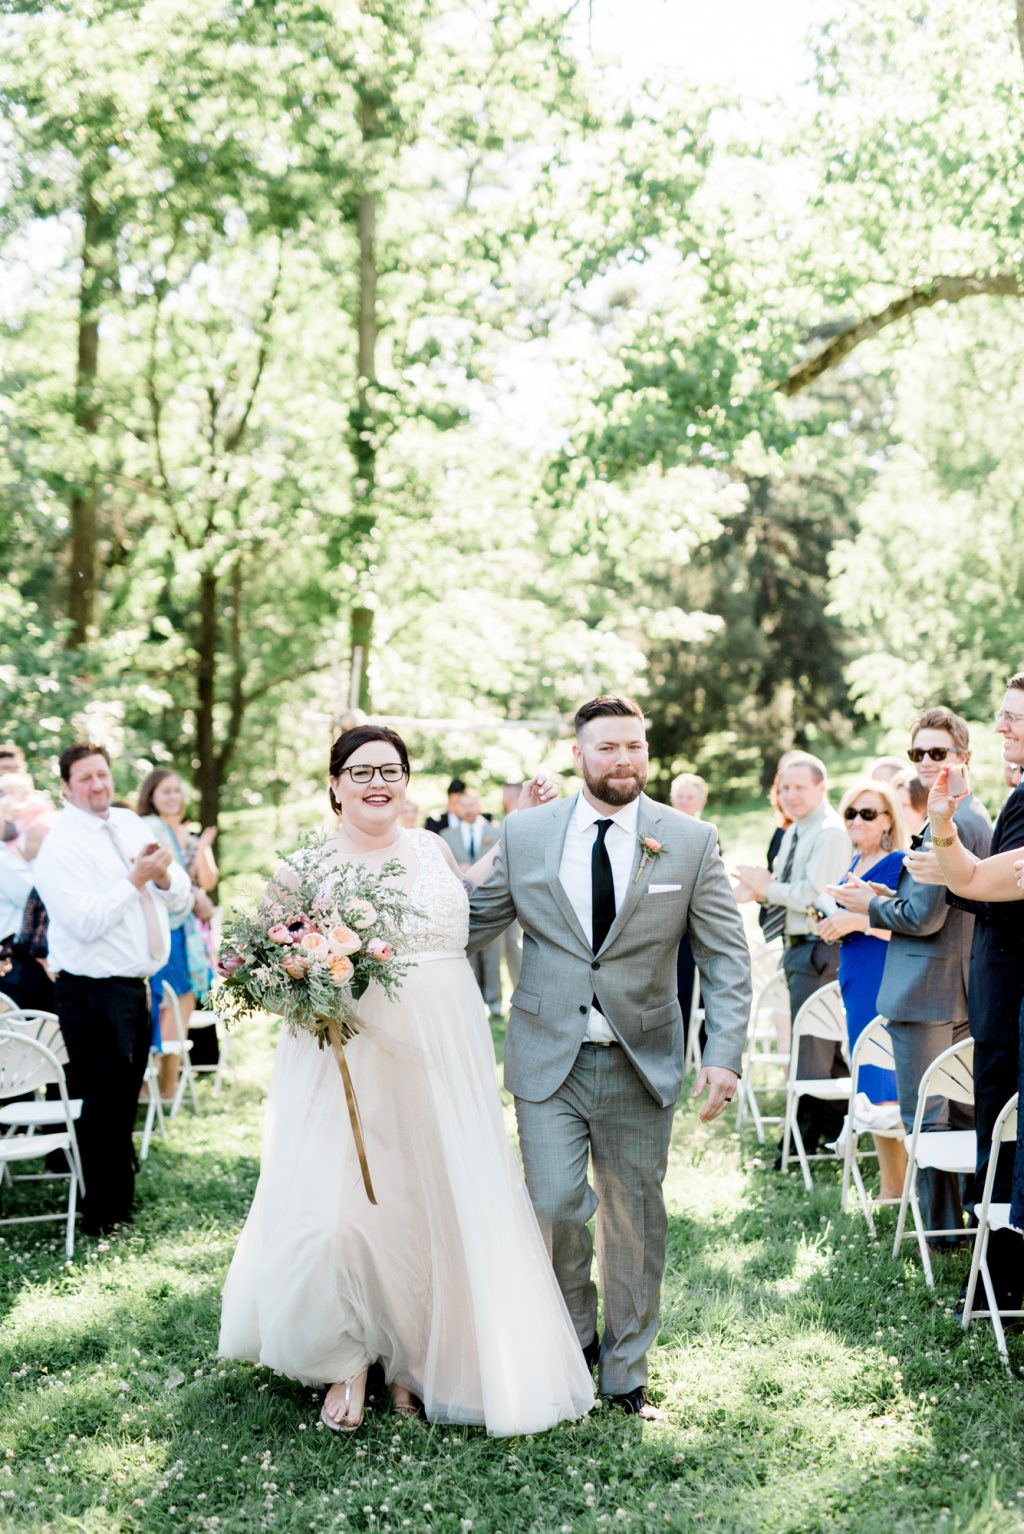 haley-richter-photo-west-chester-summer-wedding-boxcar-brewery-128